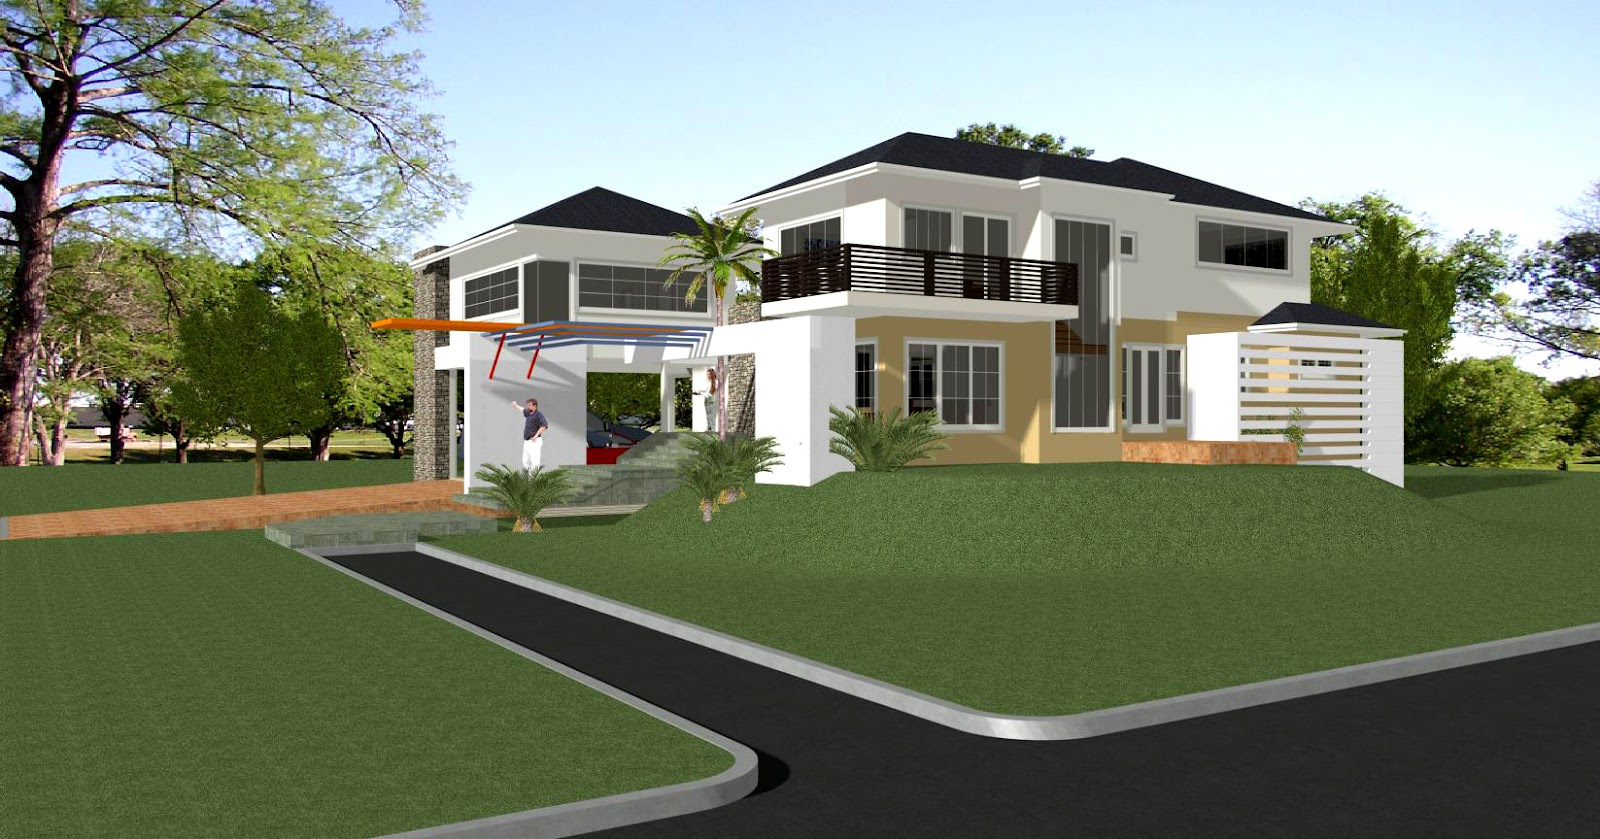 Dream home designs erecre group realty design and for Best new home designs